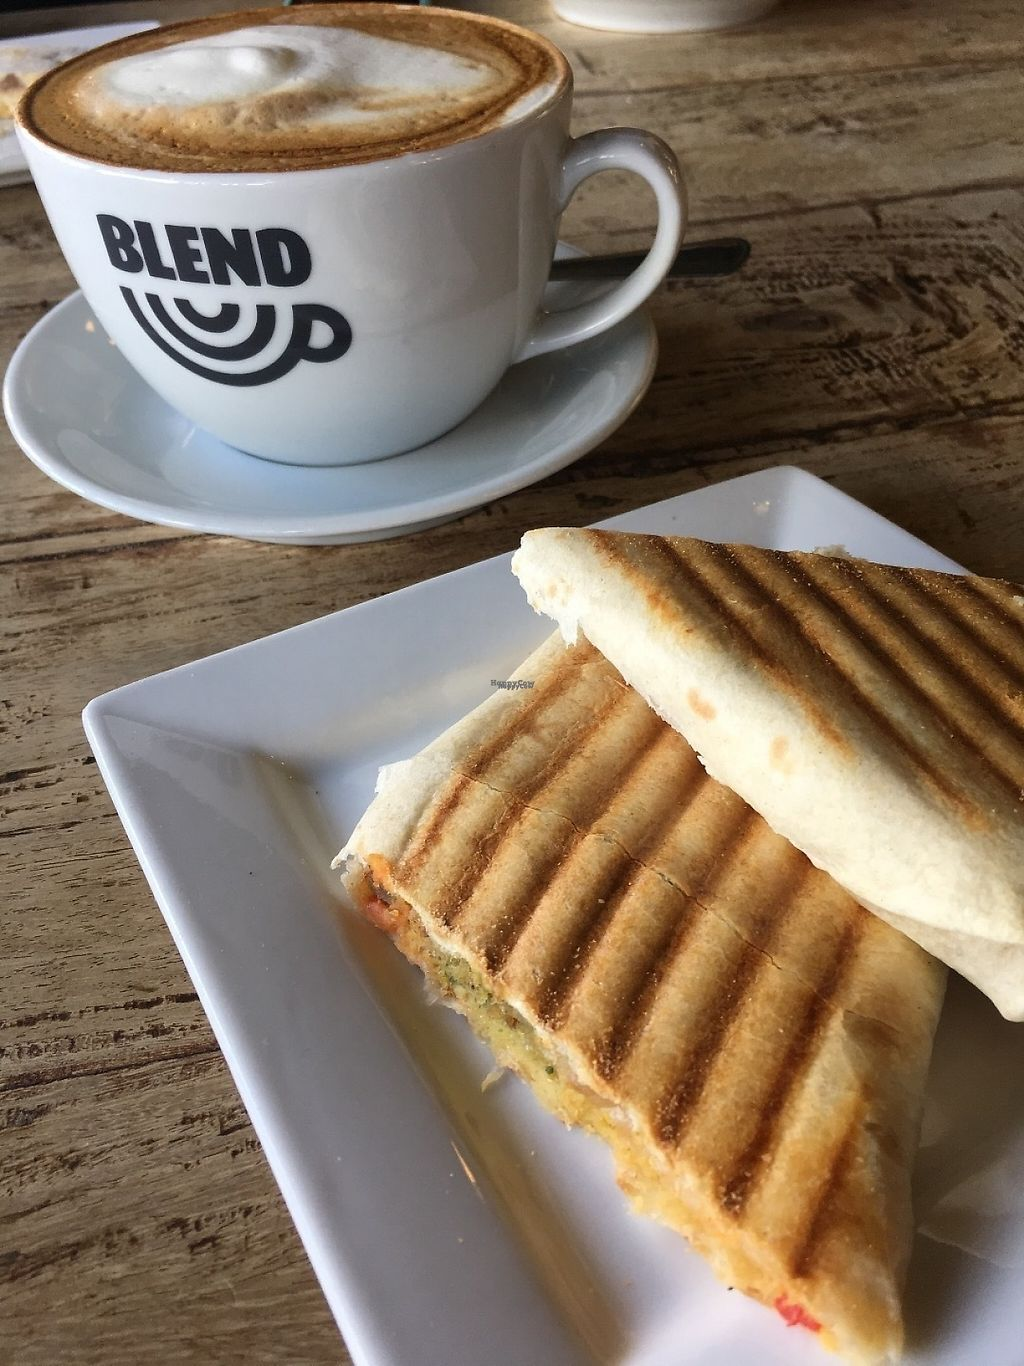 """Photo of Blend Coffee Lounge  by <a href=""""/members/profile/radiocaz"""">radiocaz</a> <br/>Vegan falafel wrap <br/> April 17, 2017  - <a href='/contact/abuse/image/90481/249297'>Report</a>"""